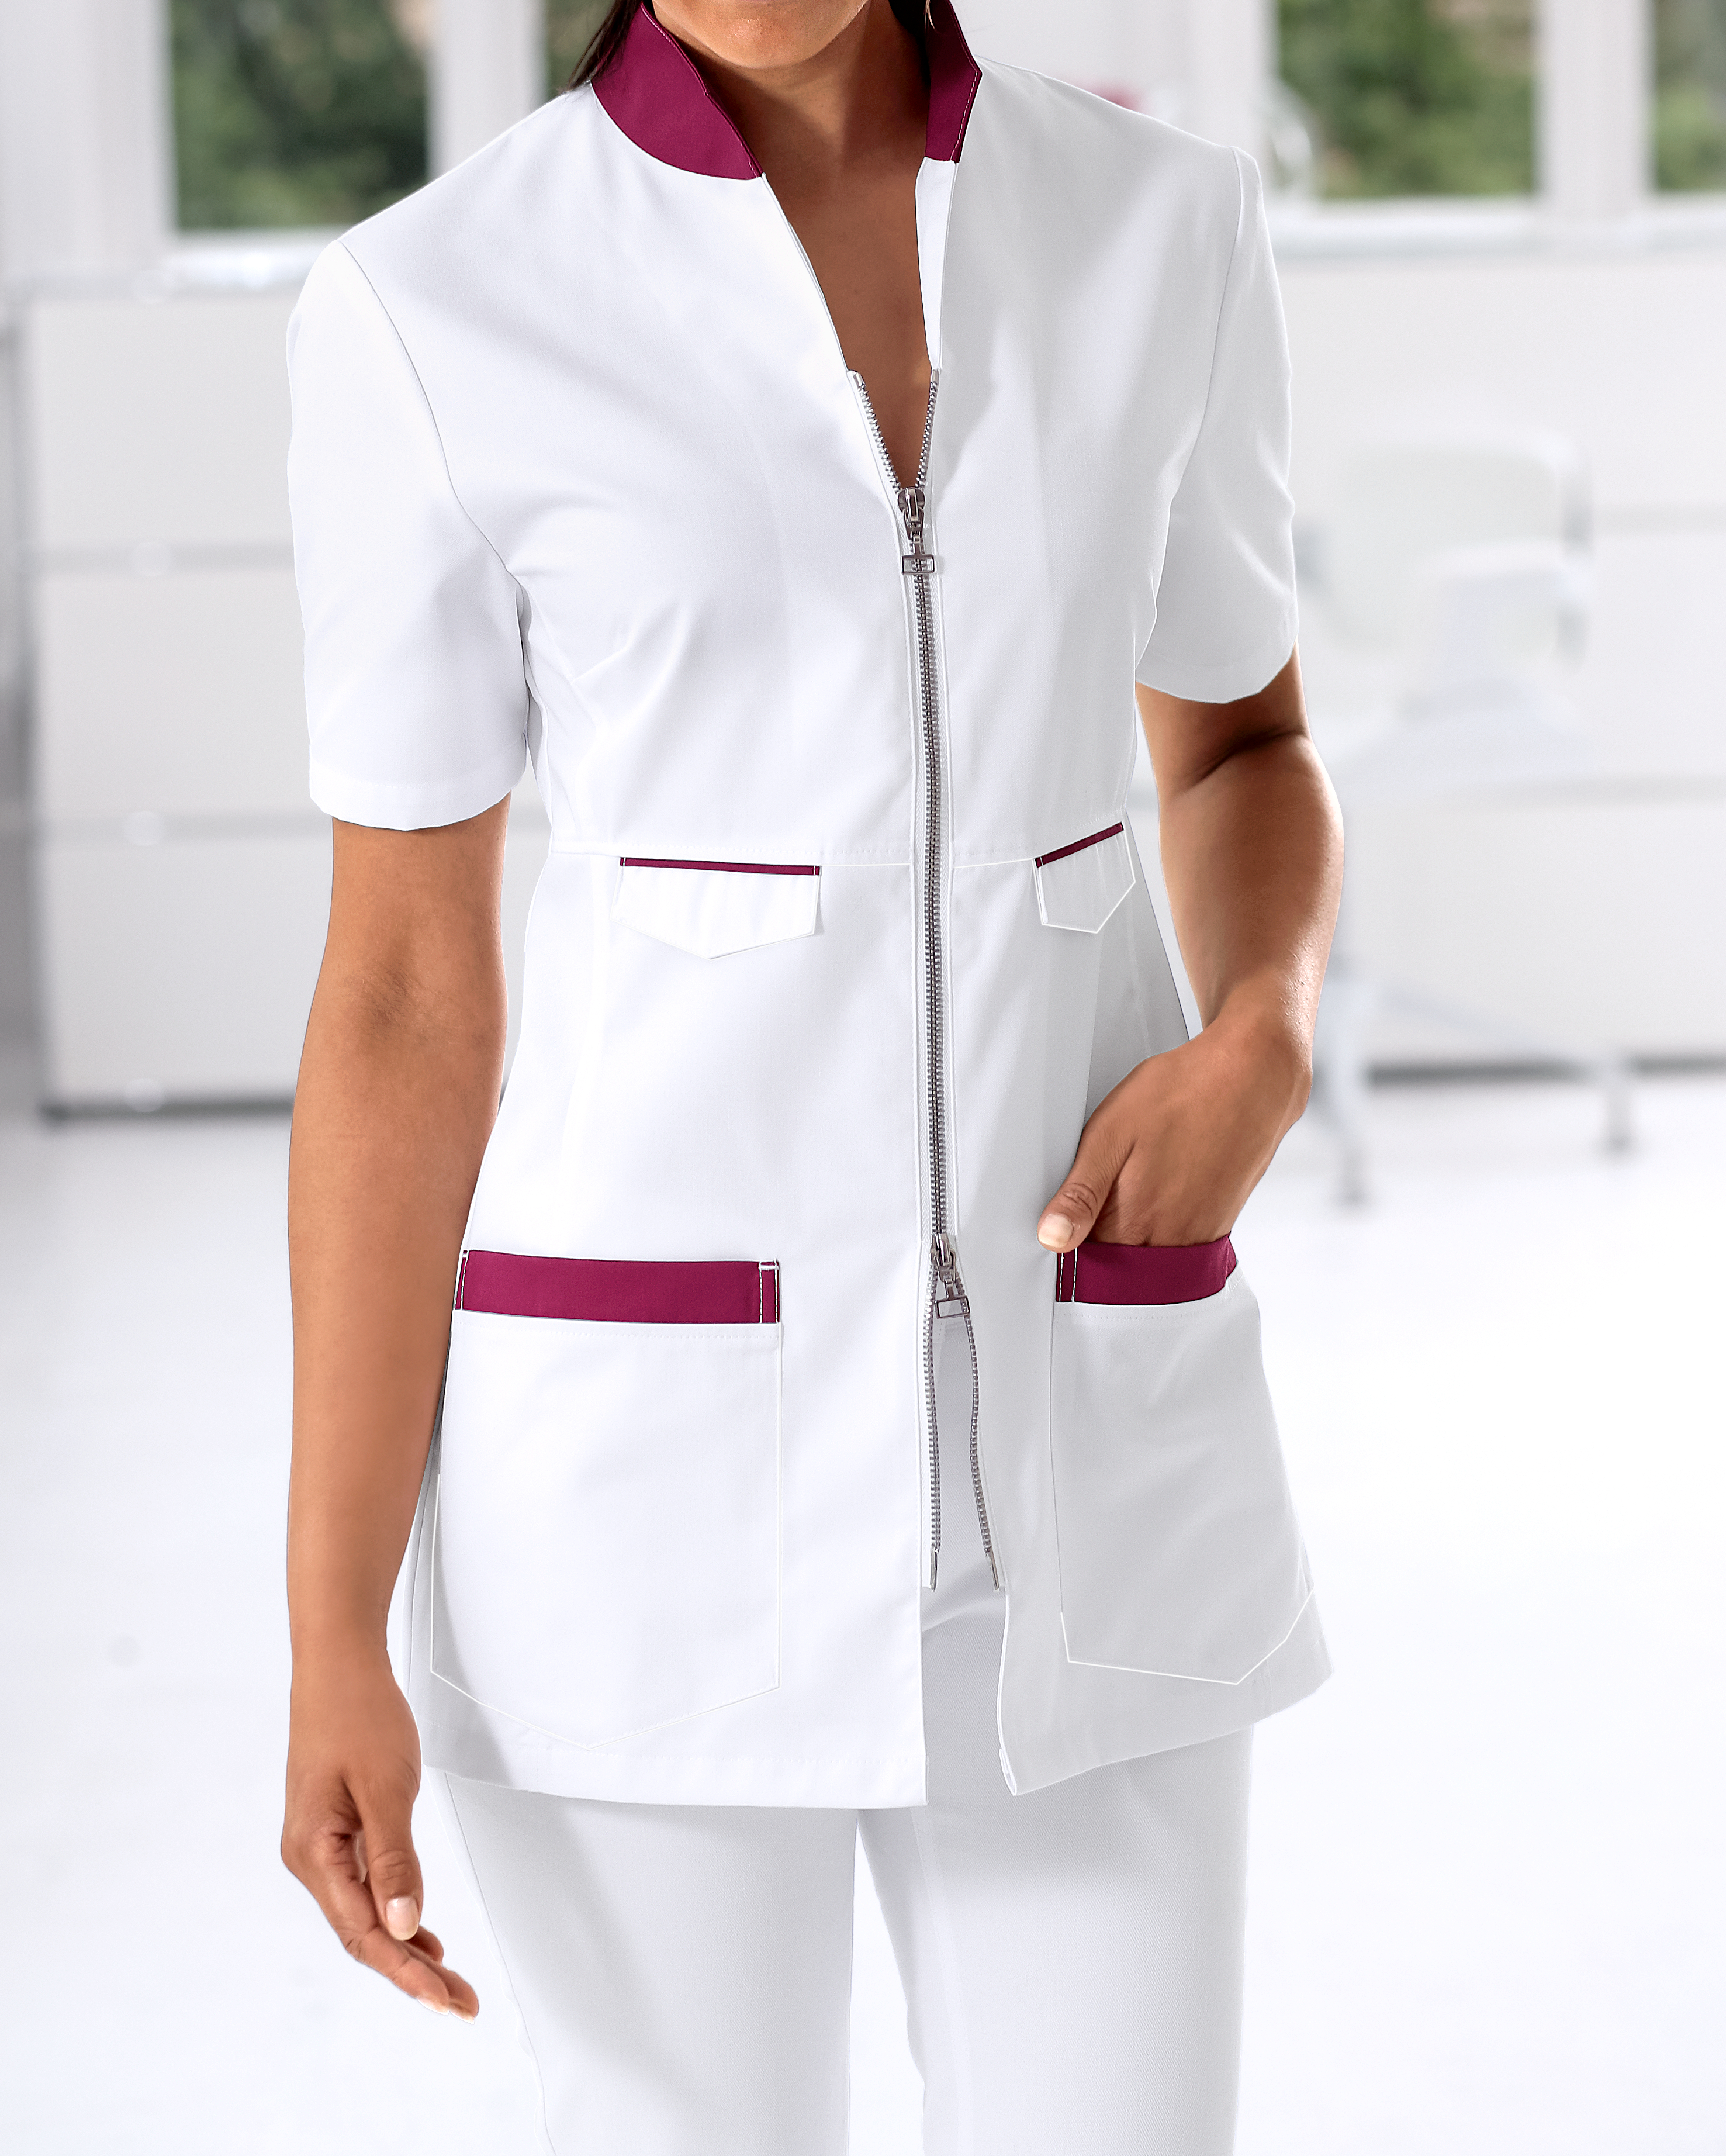 Blouse Medicale Femme Ella Clinicdress